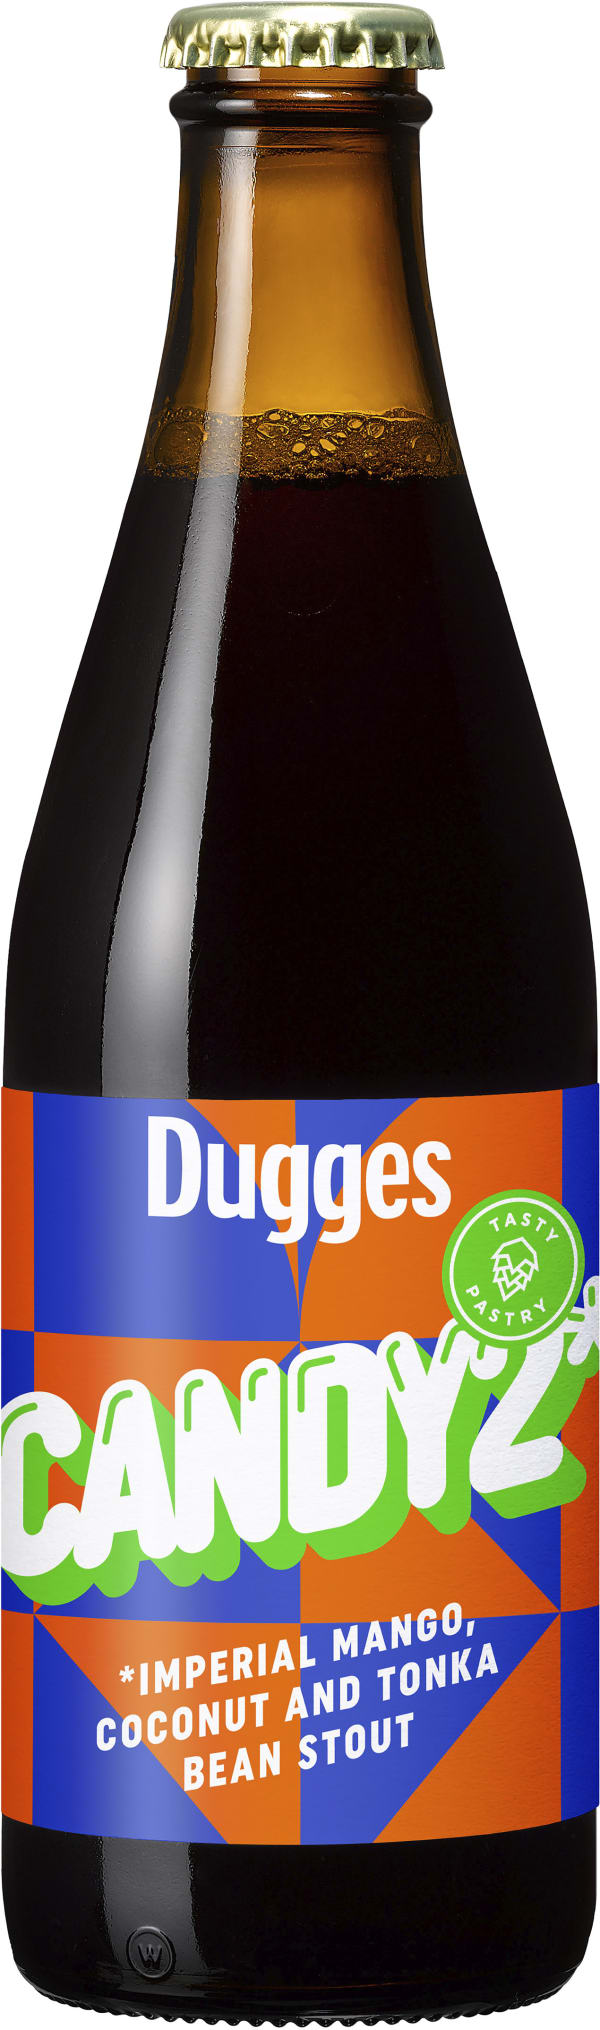 Dugges Candy2